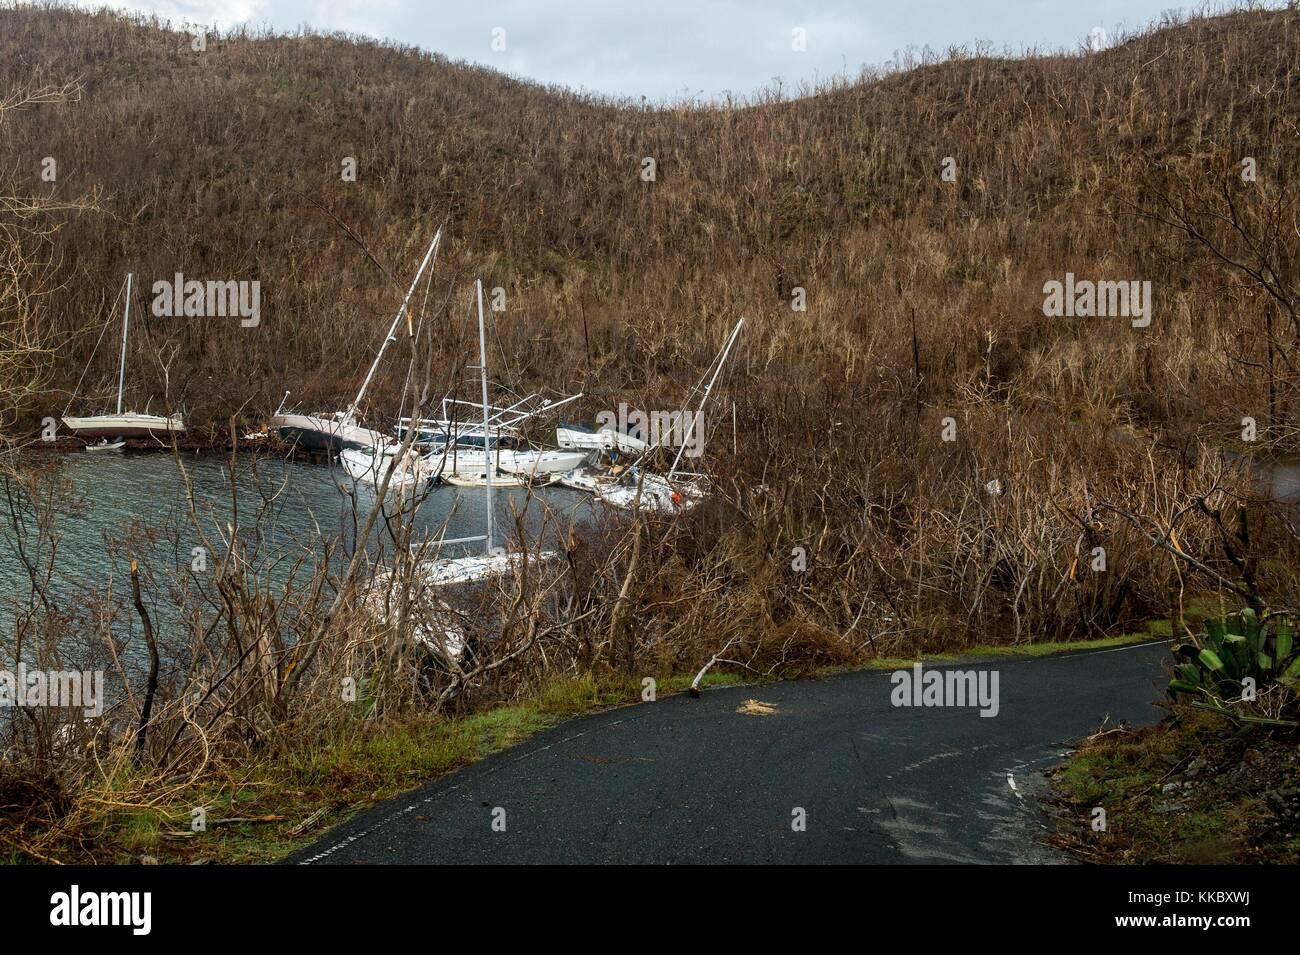 Debris and damaged boats in the aftermath of Hurricane Irma September 14, 2017 in St. John, U.S. Virgin Islands. - Stock Image